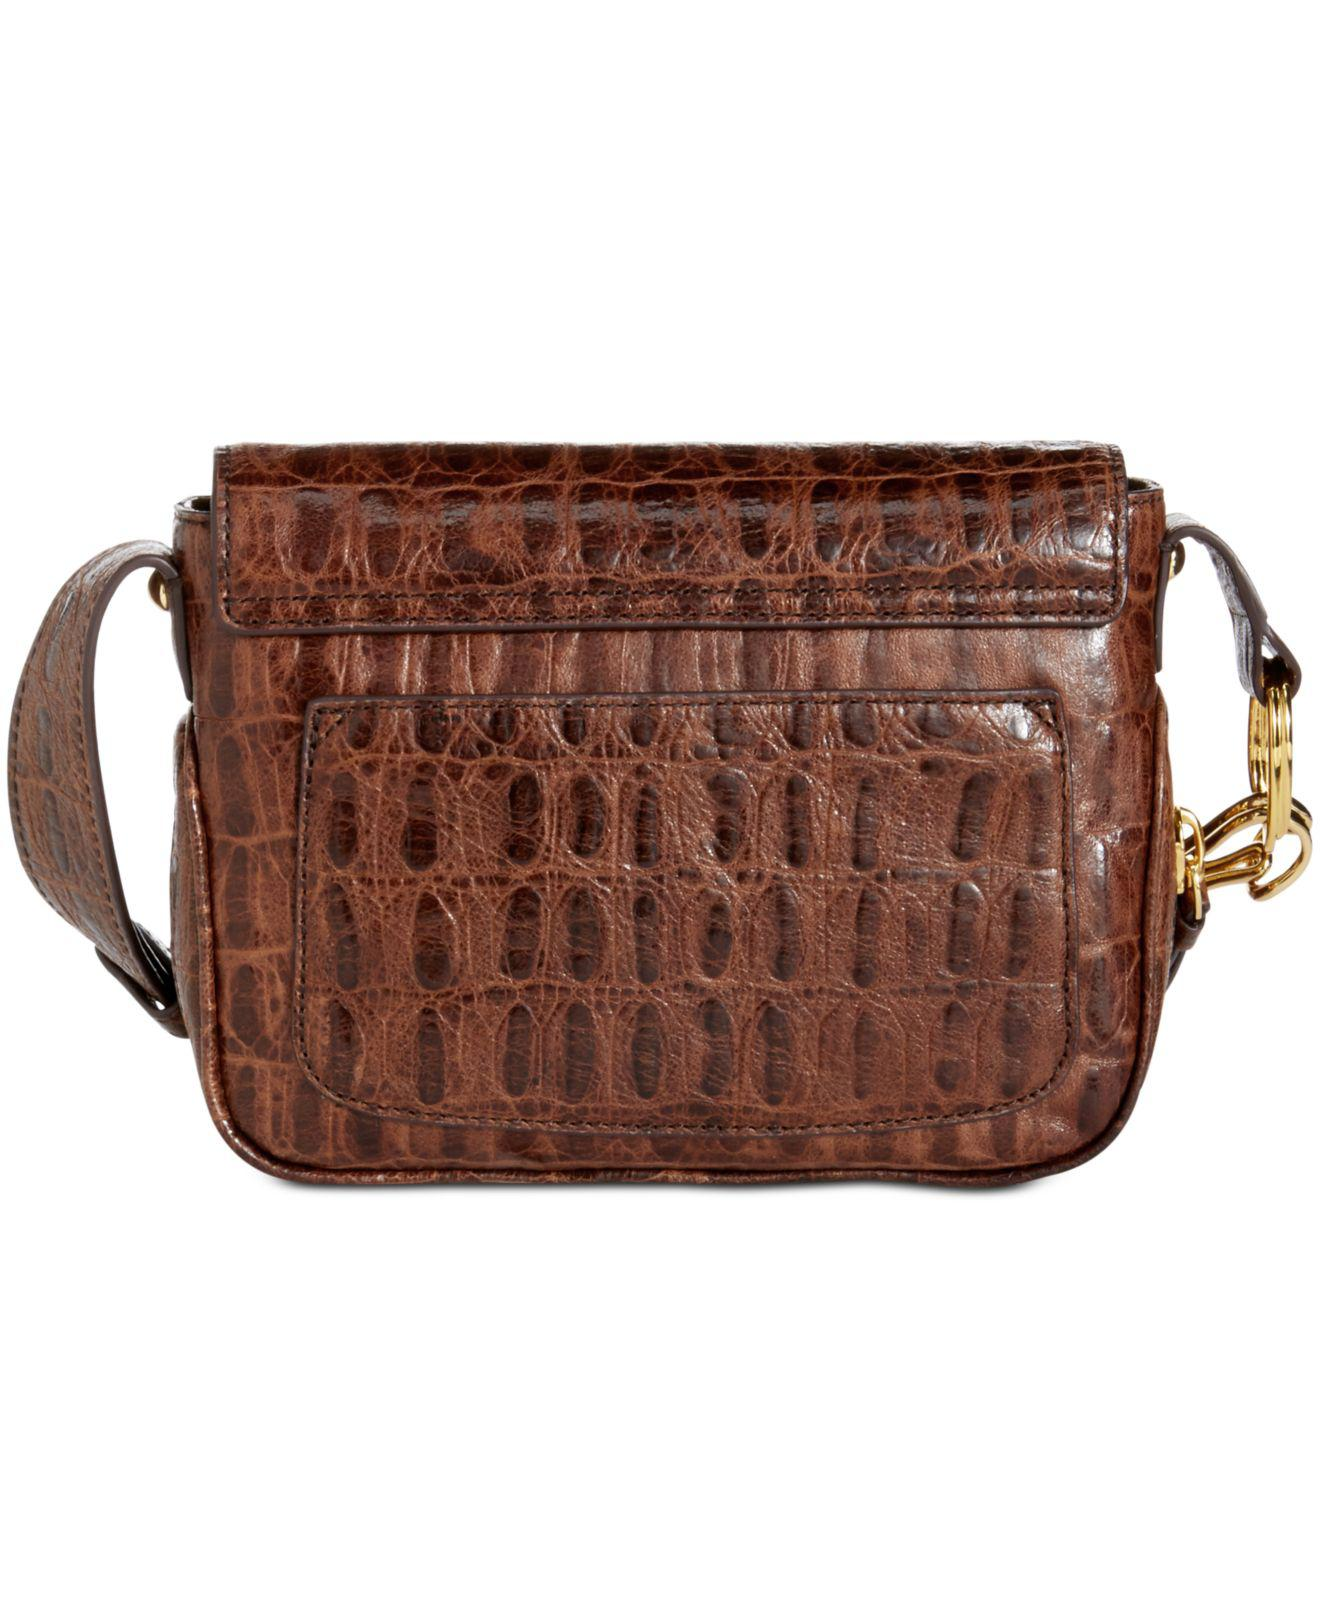 Lyst - DKNY Randall Small Flap Crossbody in Brown f46f0dddcfcae